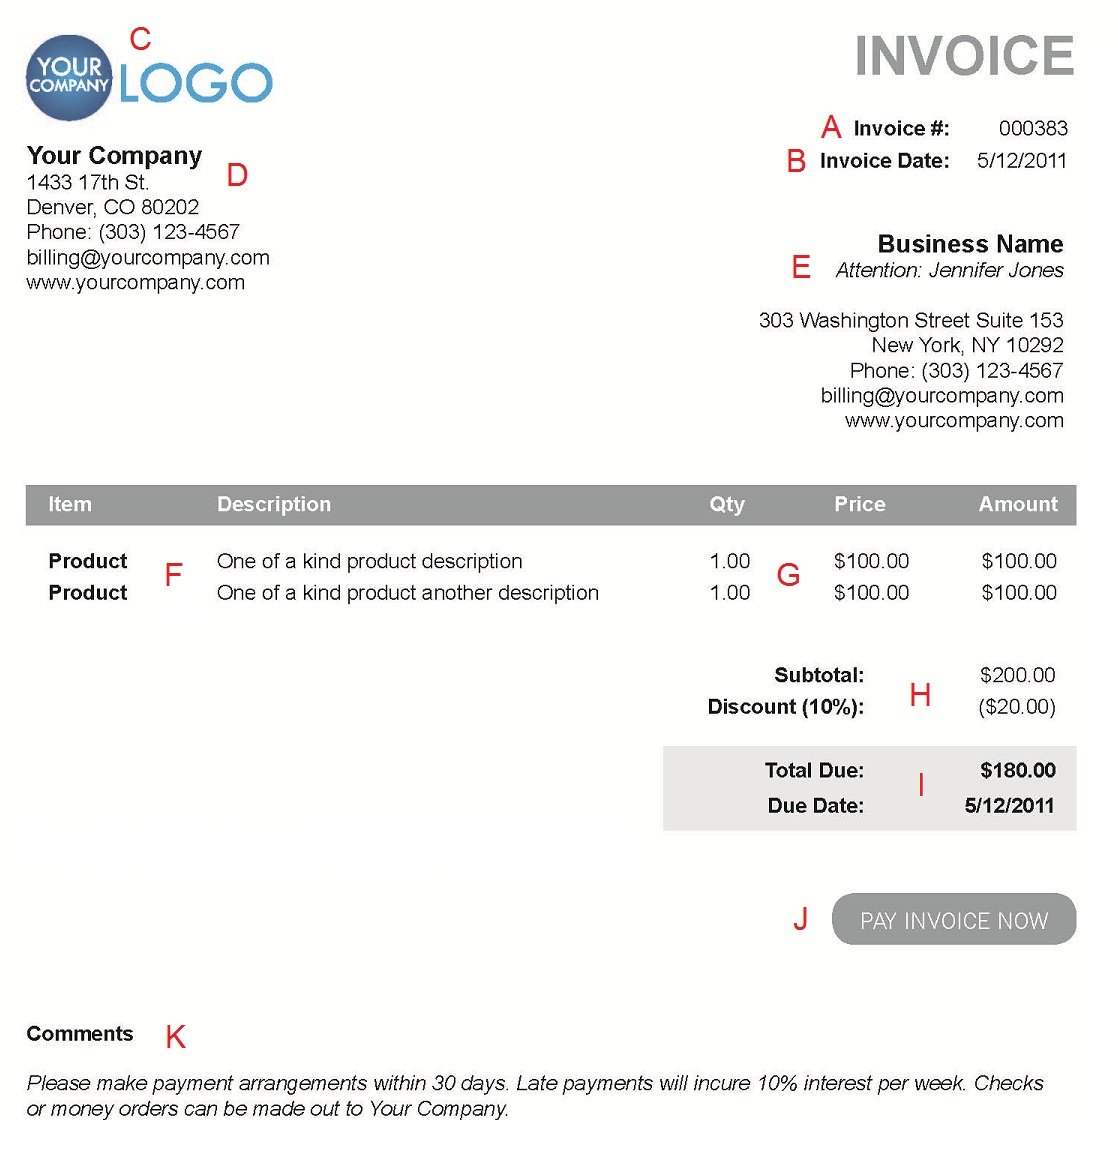 Opposenewapstandardsus  Prepossessing The  Different Sections Of An Electronic Payment Invoice With Outstanding A  With Extraordinary Free Online Invoice Template Also Invoice Software For Mac In Addition Invoice Pricing And How To Fill Out An Invoice As Well As Quickbooks Invoicing Additionally Past Due Invoice Letter From Paysimplecom With Opposenewapstandardsus  Outstanding The  Different Sections Of An Electronic Payment Invoice With Extraordinary A  And Prepossessing Free Online Invoice Template Also Invoice Software For Mac In Addition Invoice Pricing From Paysimplecom